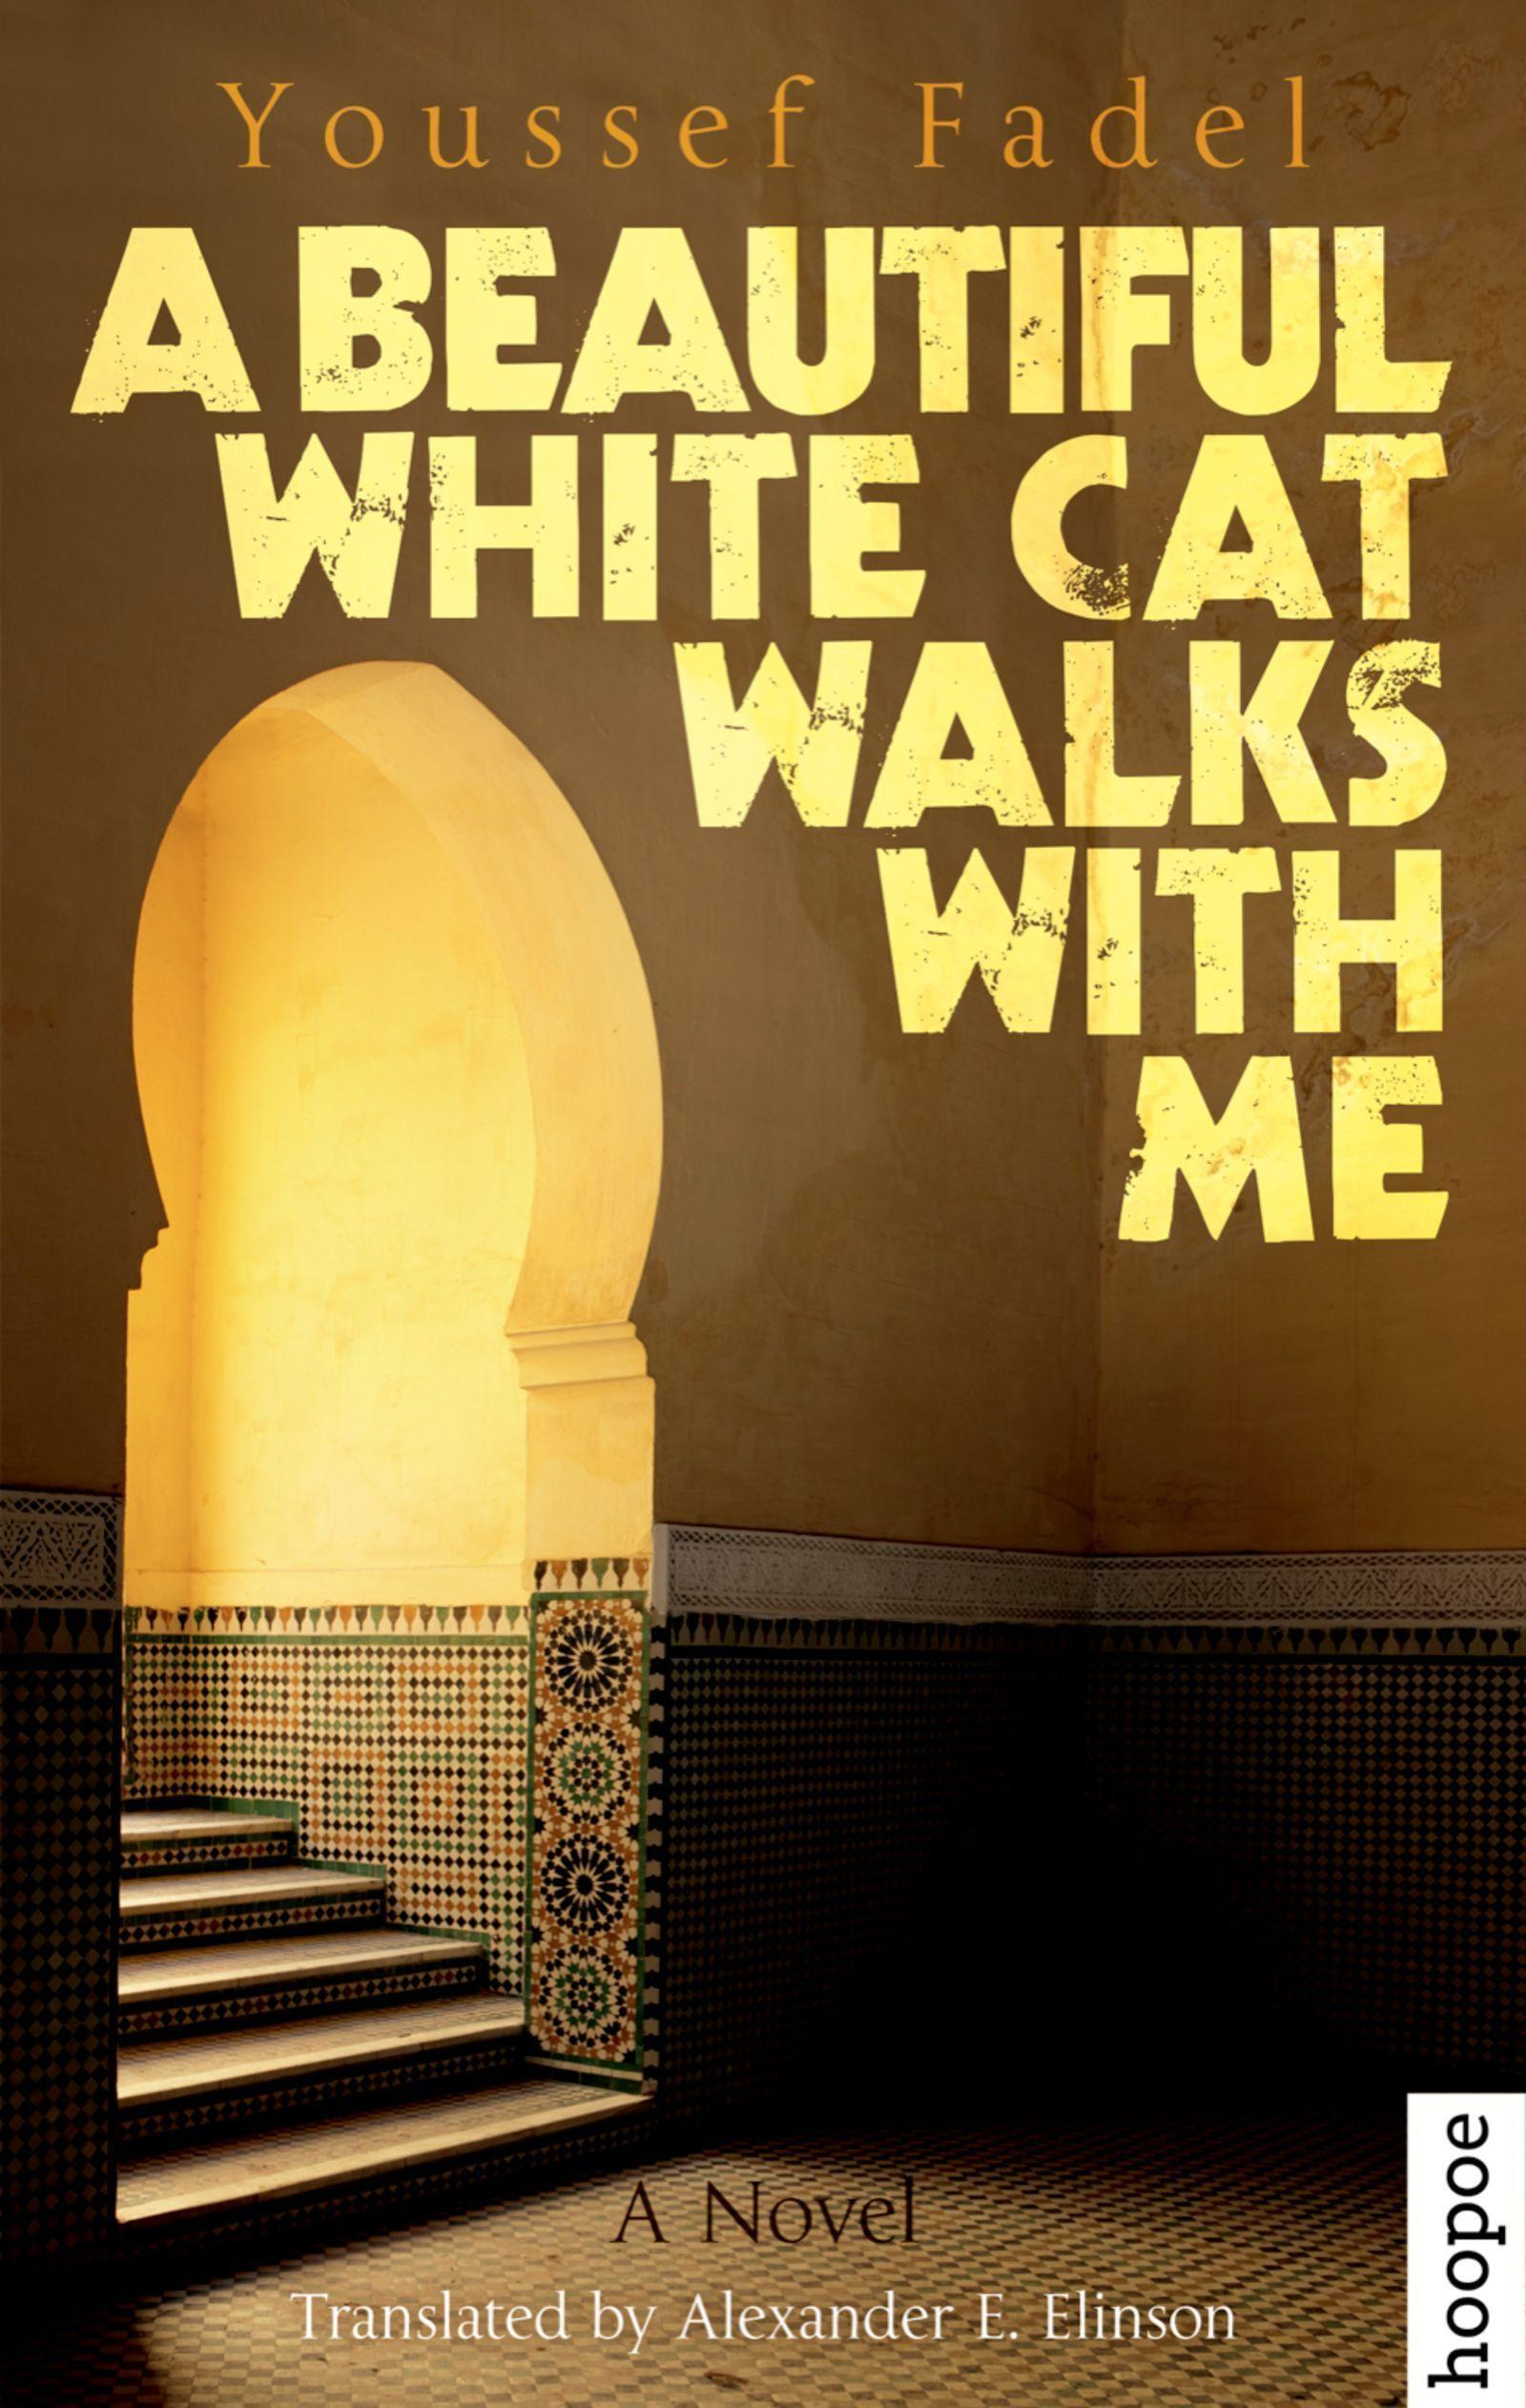 A-Beautiful-White-Cat-Walks-with-Me-Youssef-Fadel